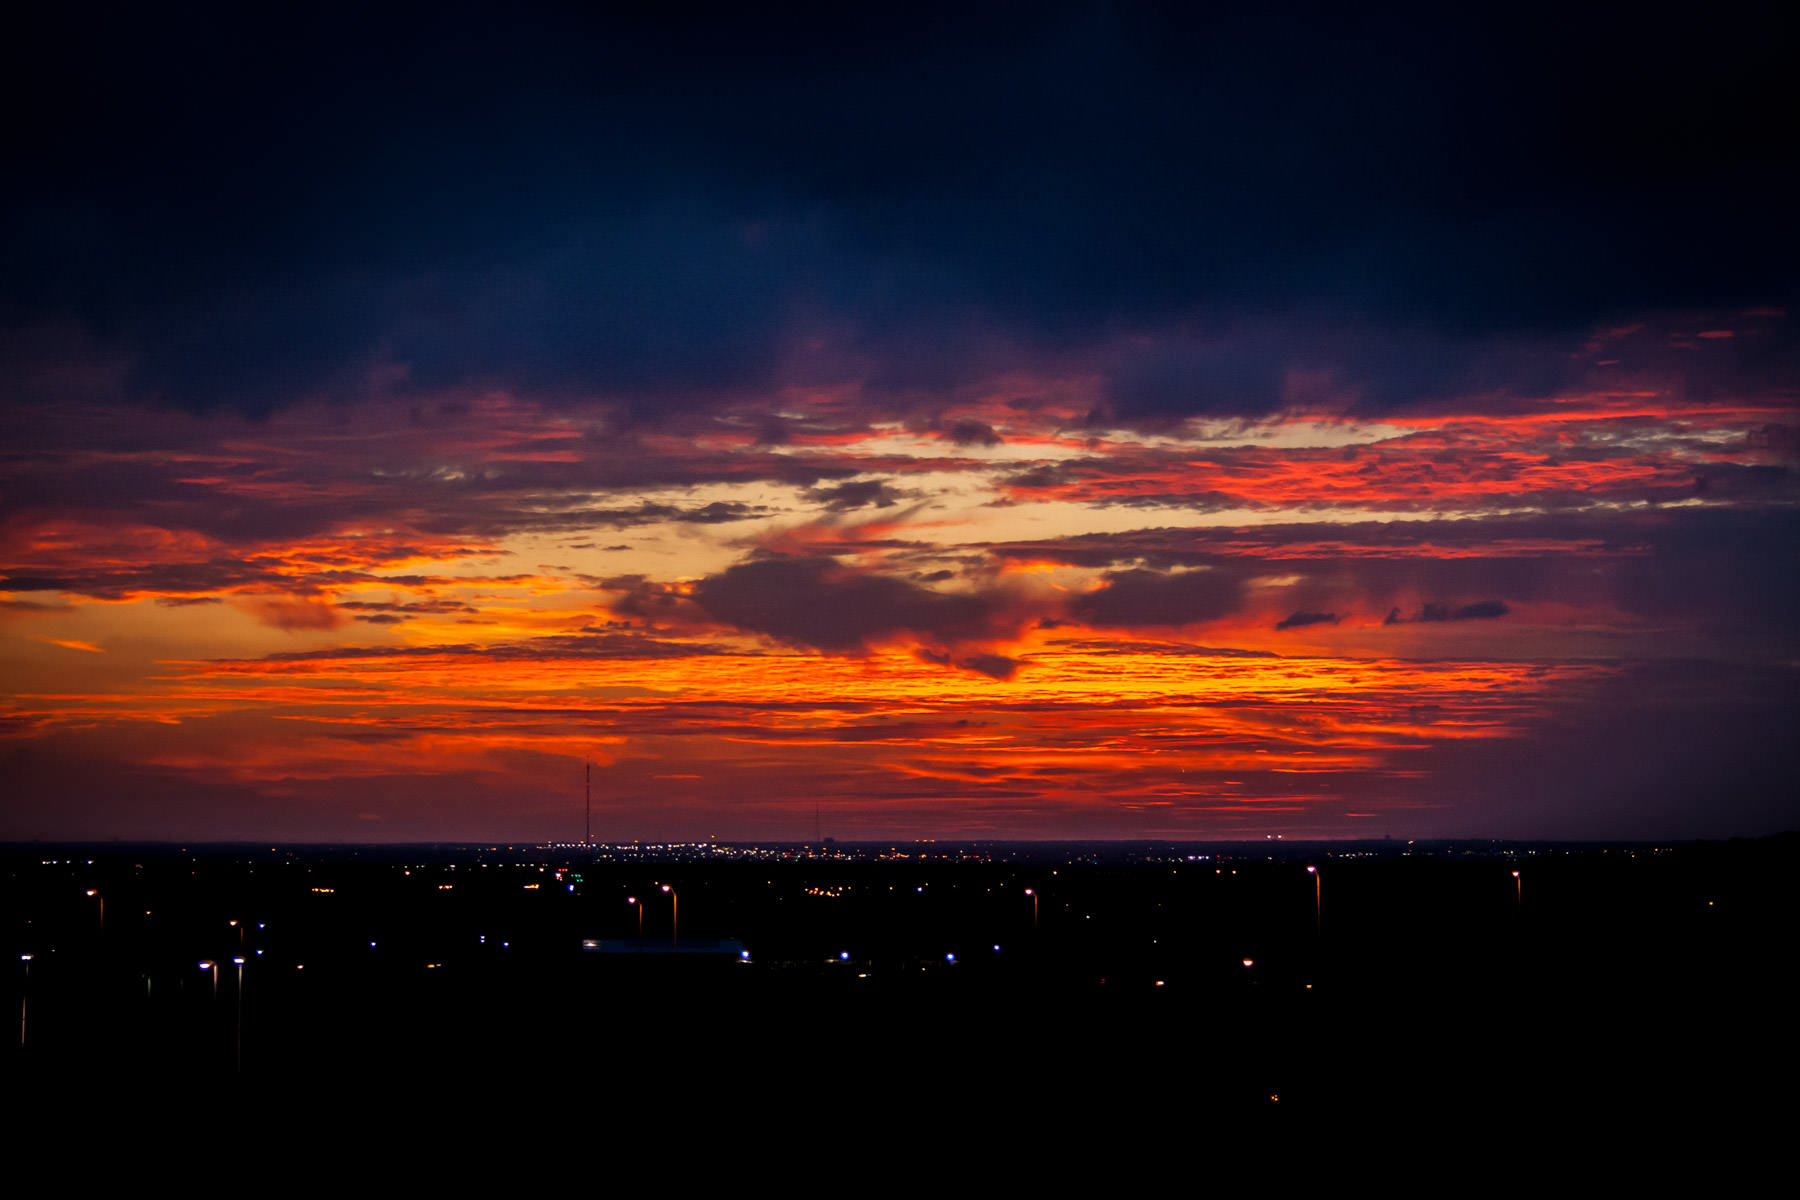 The sun setting over Dallas County, Texas.